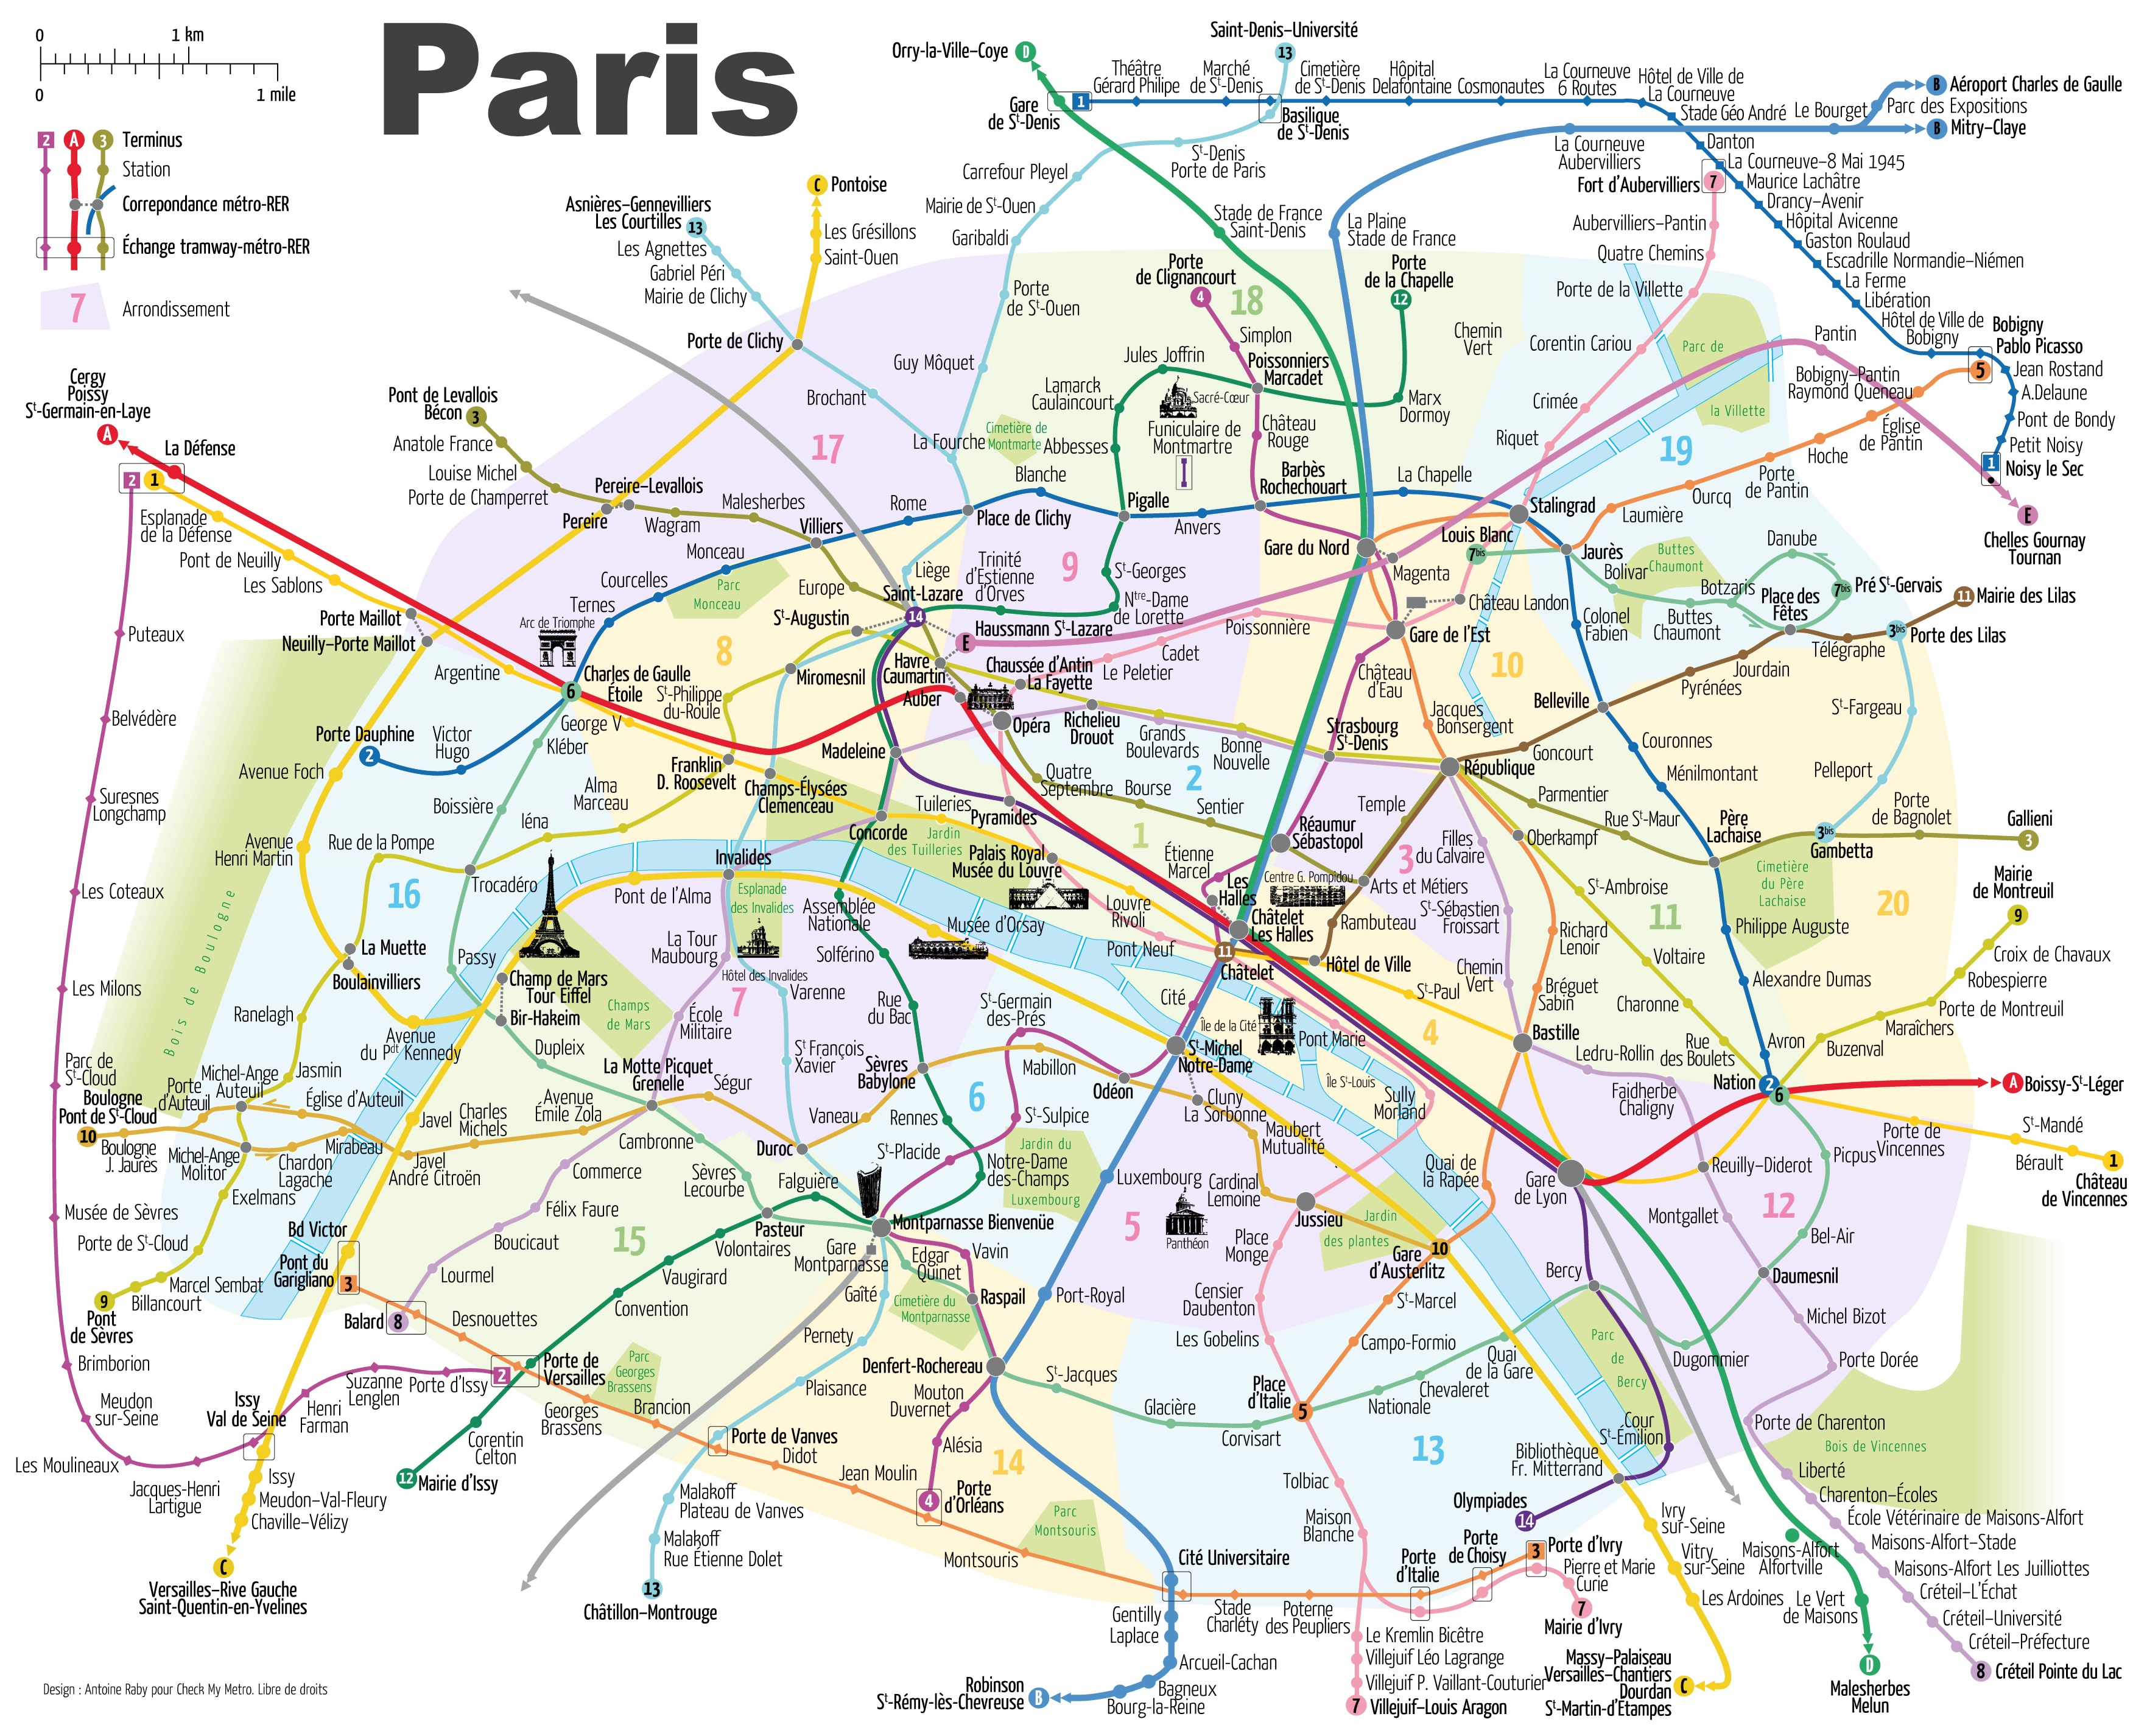 Paris Metro Map With Main Tourist Attractions - Printable Map Of Paris Tourist Attractions